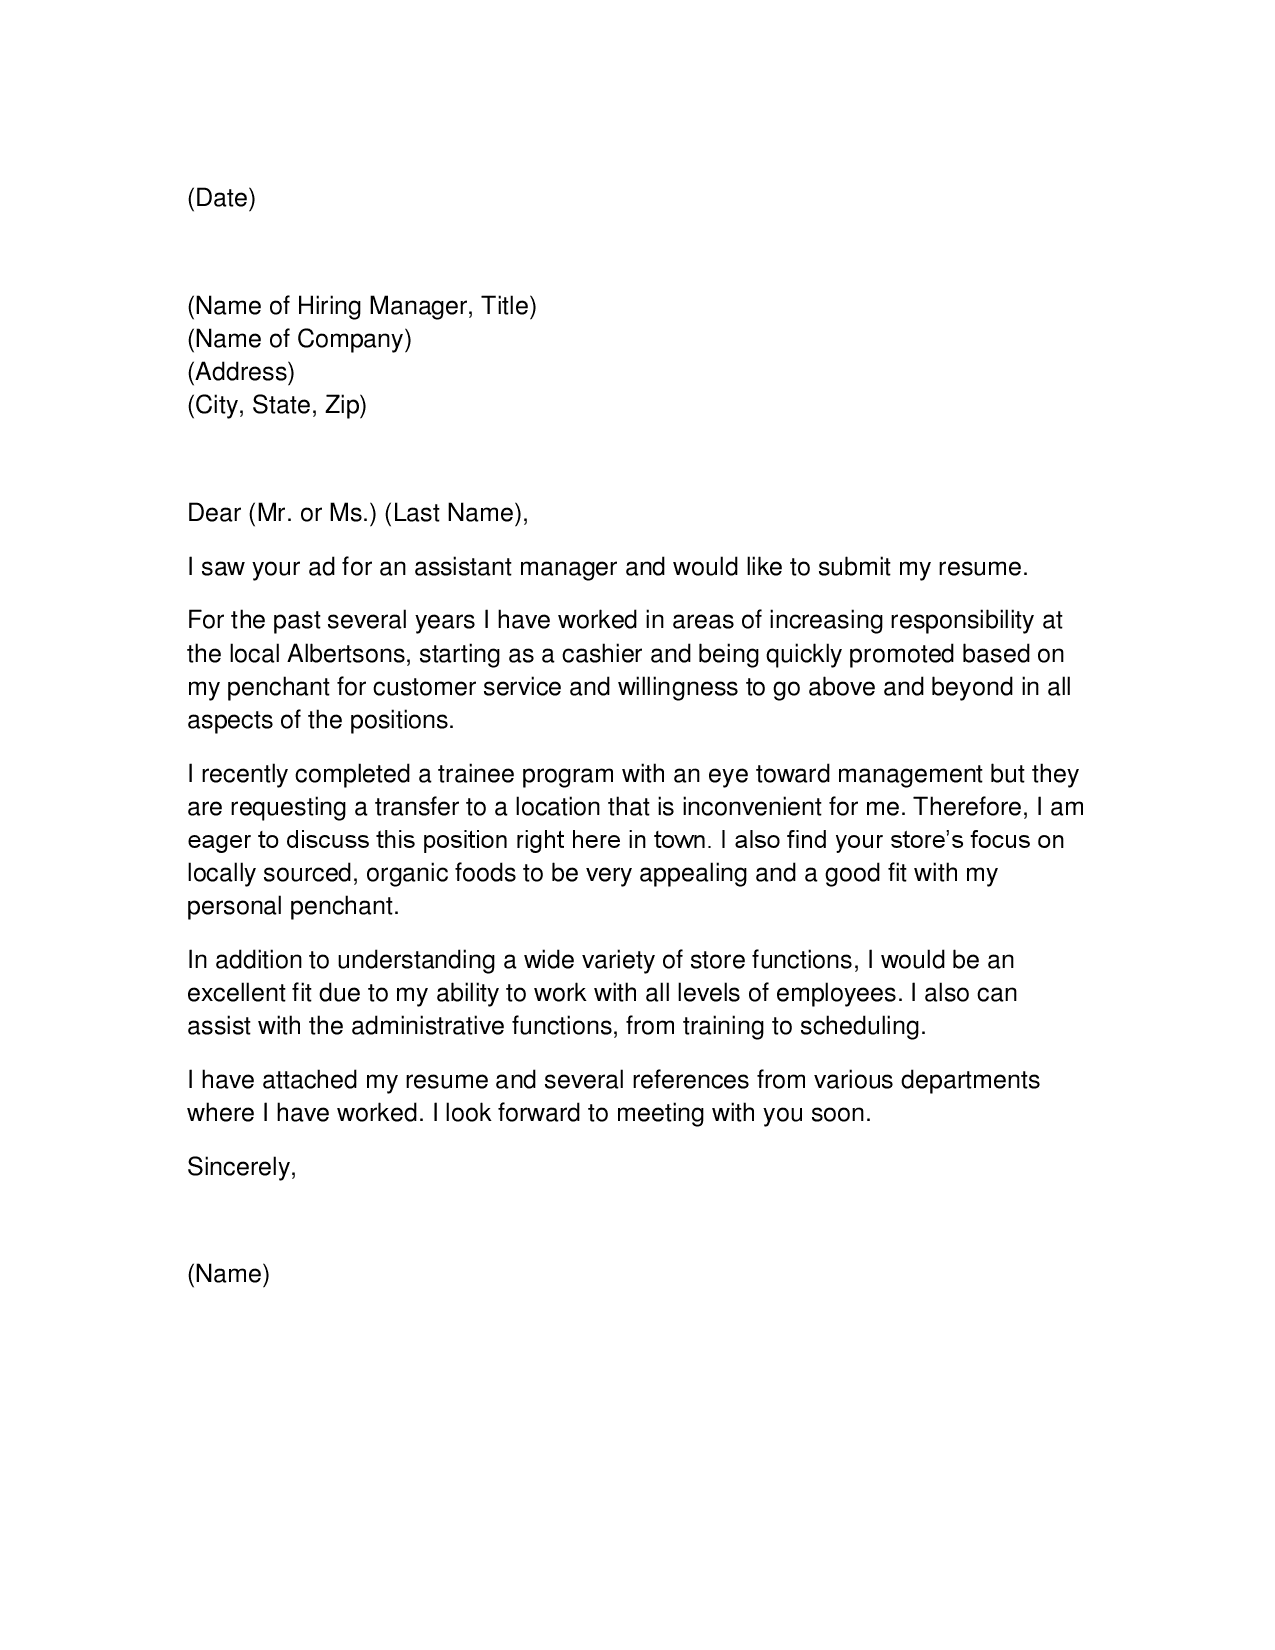 Resume Cover Letter Grocery Store